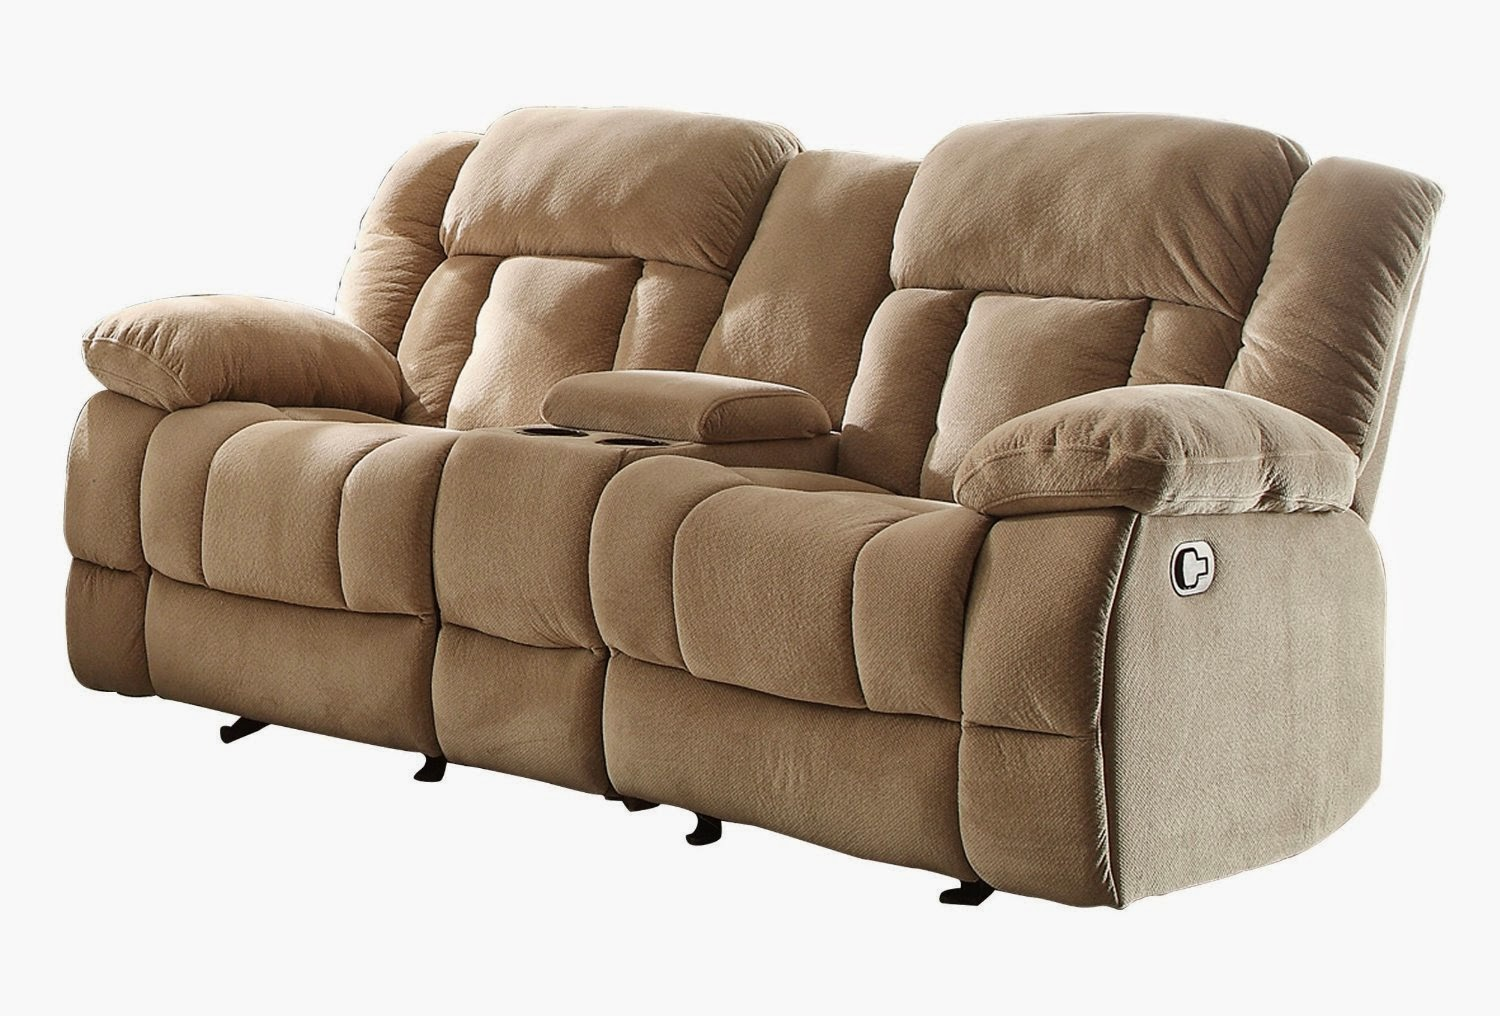 Broyhill Recliner Sofas Best 25 Double Recliner Loveseat